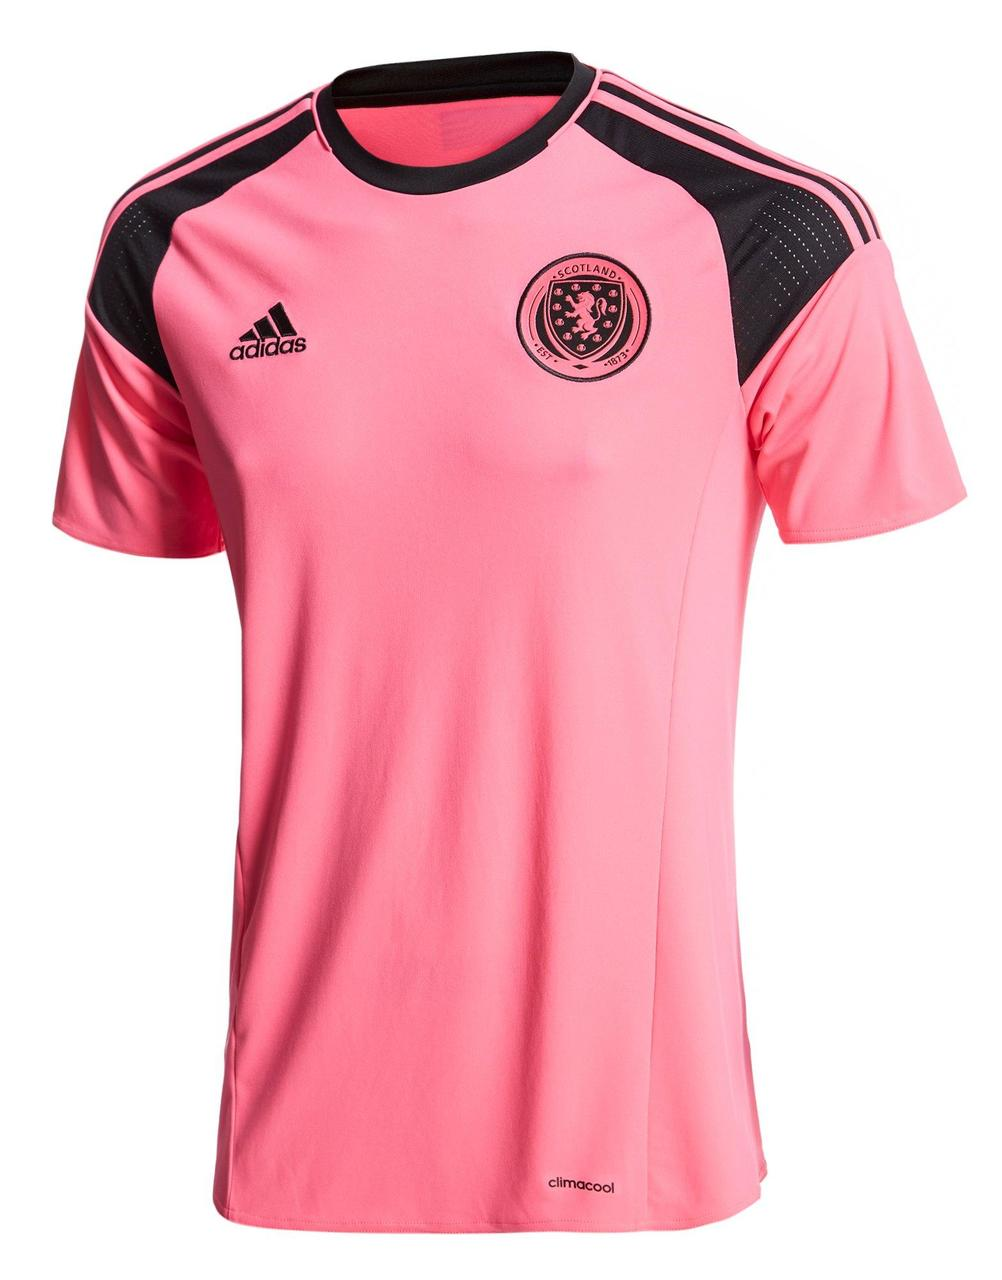 Football Shirts and Sport & Fashion Wear & Equipment - Made to Order or in Stock. Your quality online Sports & Fashion Apparel shop exporting world-wide: UNIQ Apparel International.